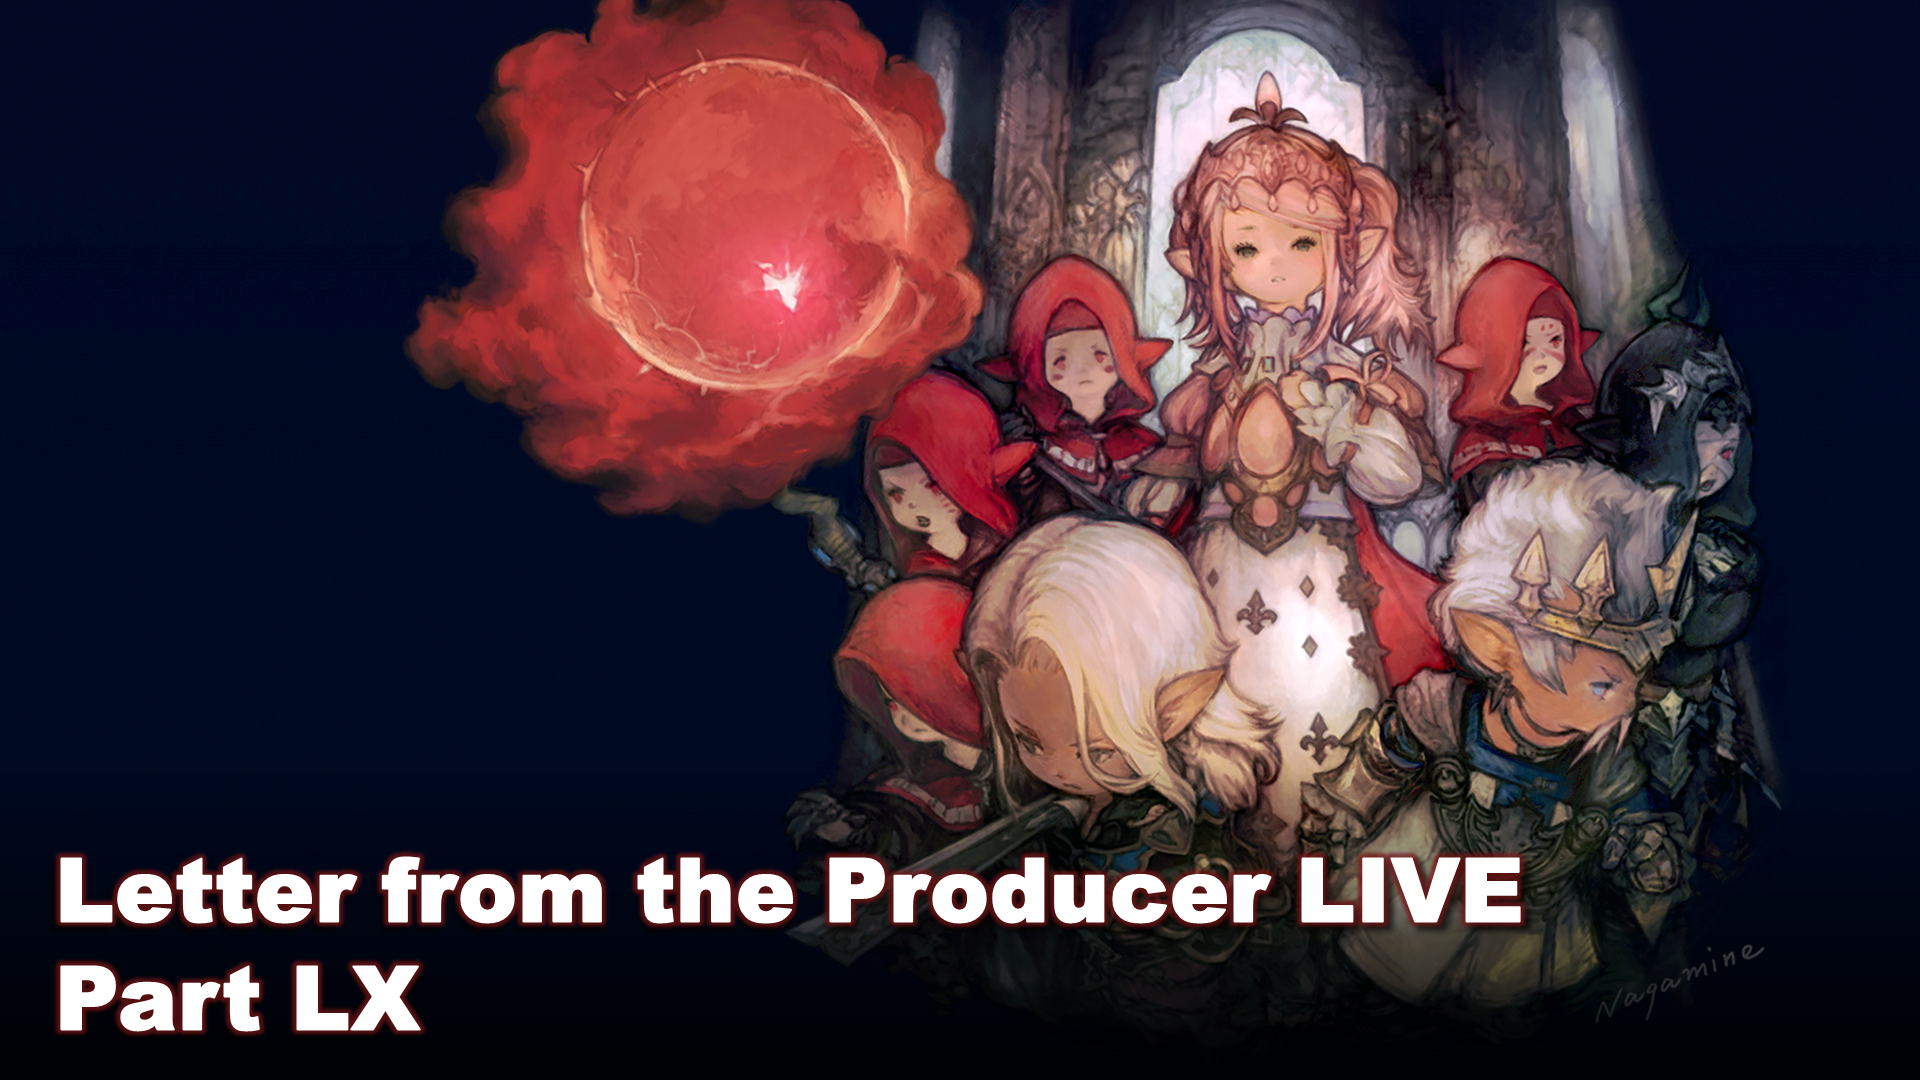 Letter from the Producer LIVE Part LX Digest Released